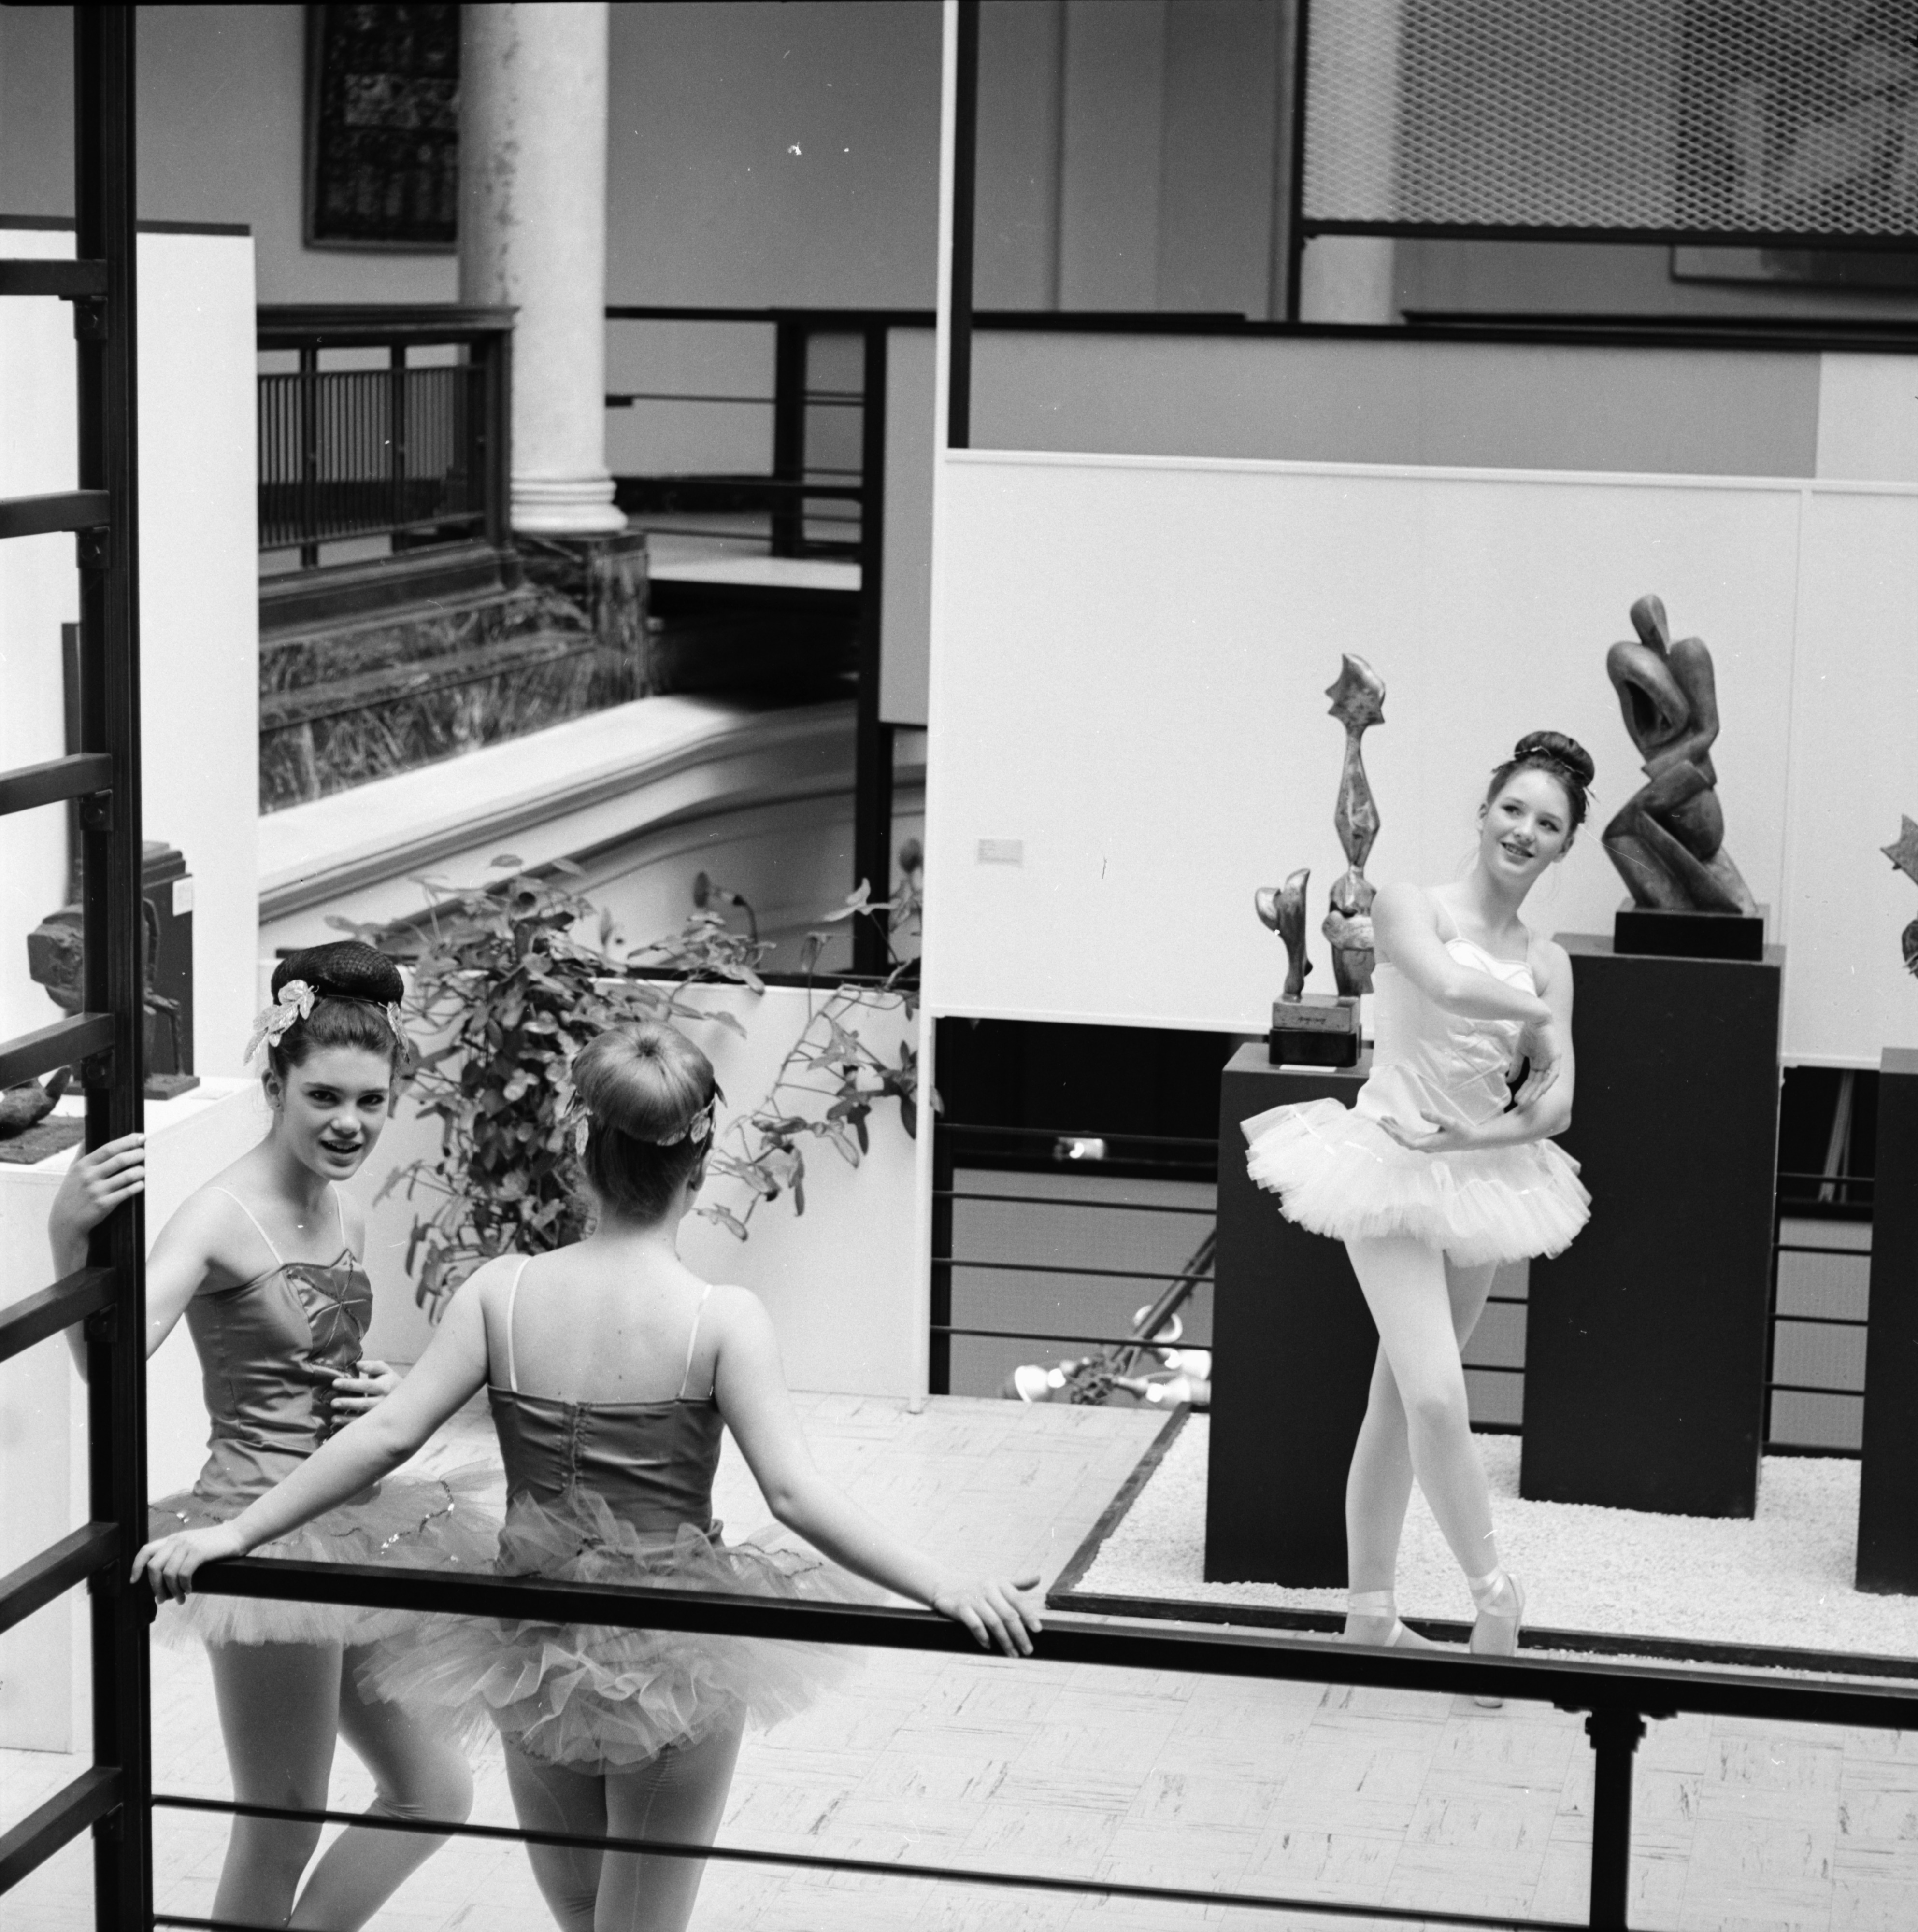 Ann Arbor Civic Ballet members at Alumni Memorial Hall, April 1966 image